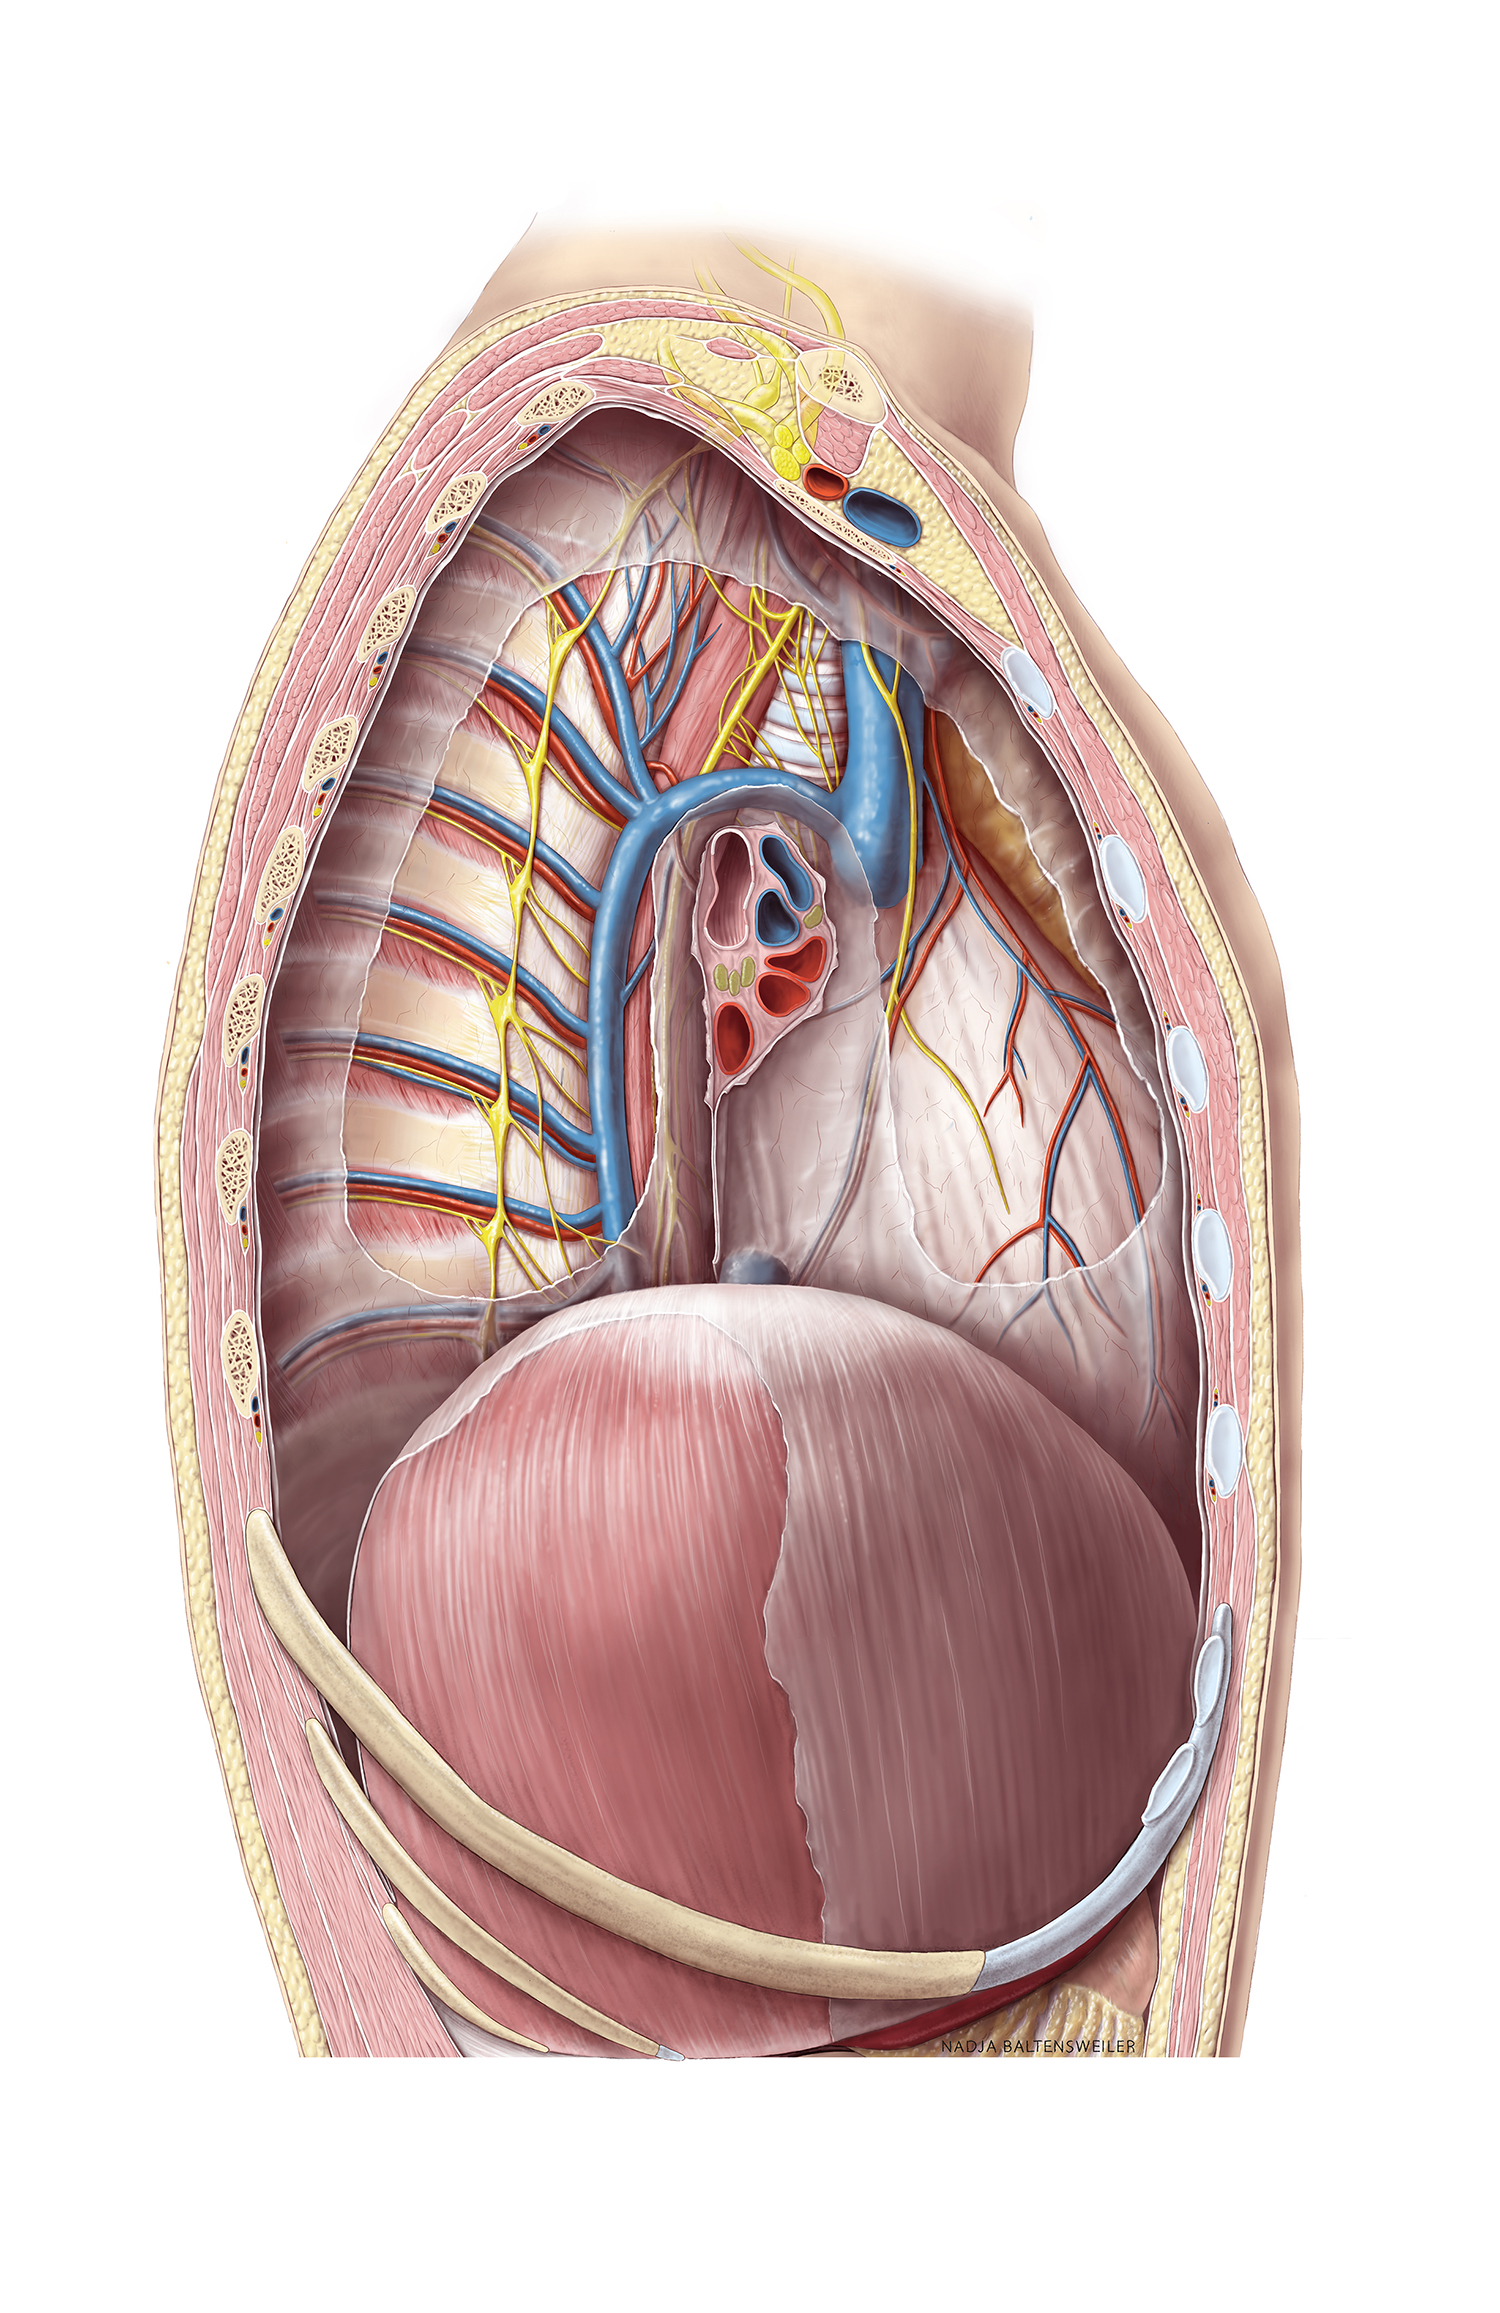 Lateral View Of Opened Thorax Lung Removed Anatomytool